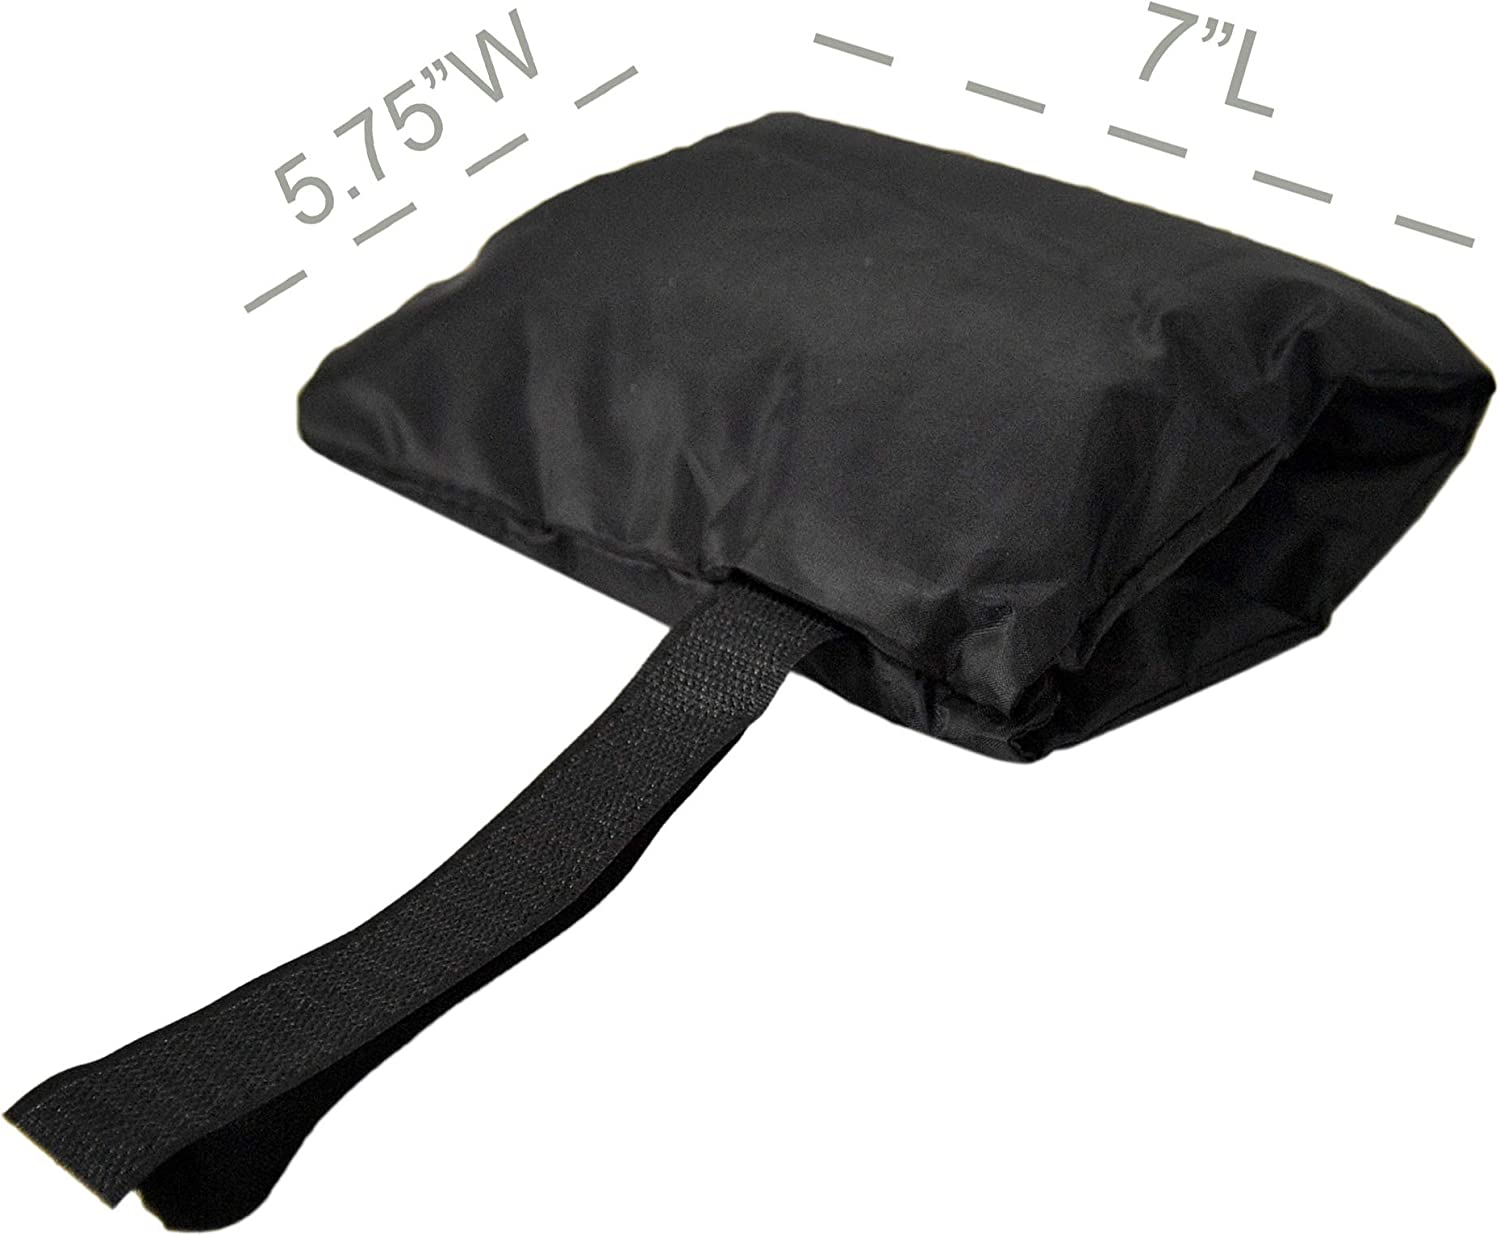 Pipe Protection for Winter Summer Garden Faucet Bag Faucet Cover Waterproof and Rustproof Protection Bag Home-X Outdoor Tap Water Faucet Cover Outside Tap Cover-Black